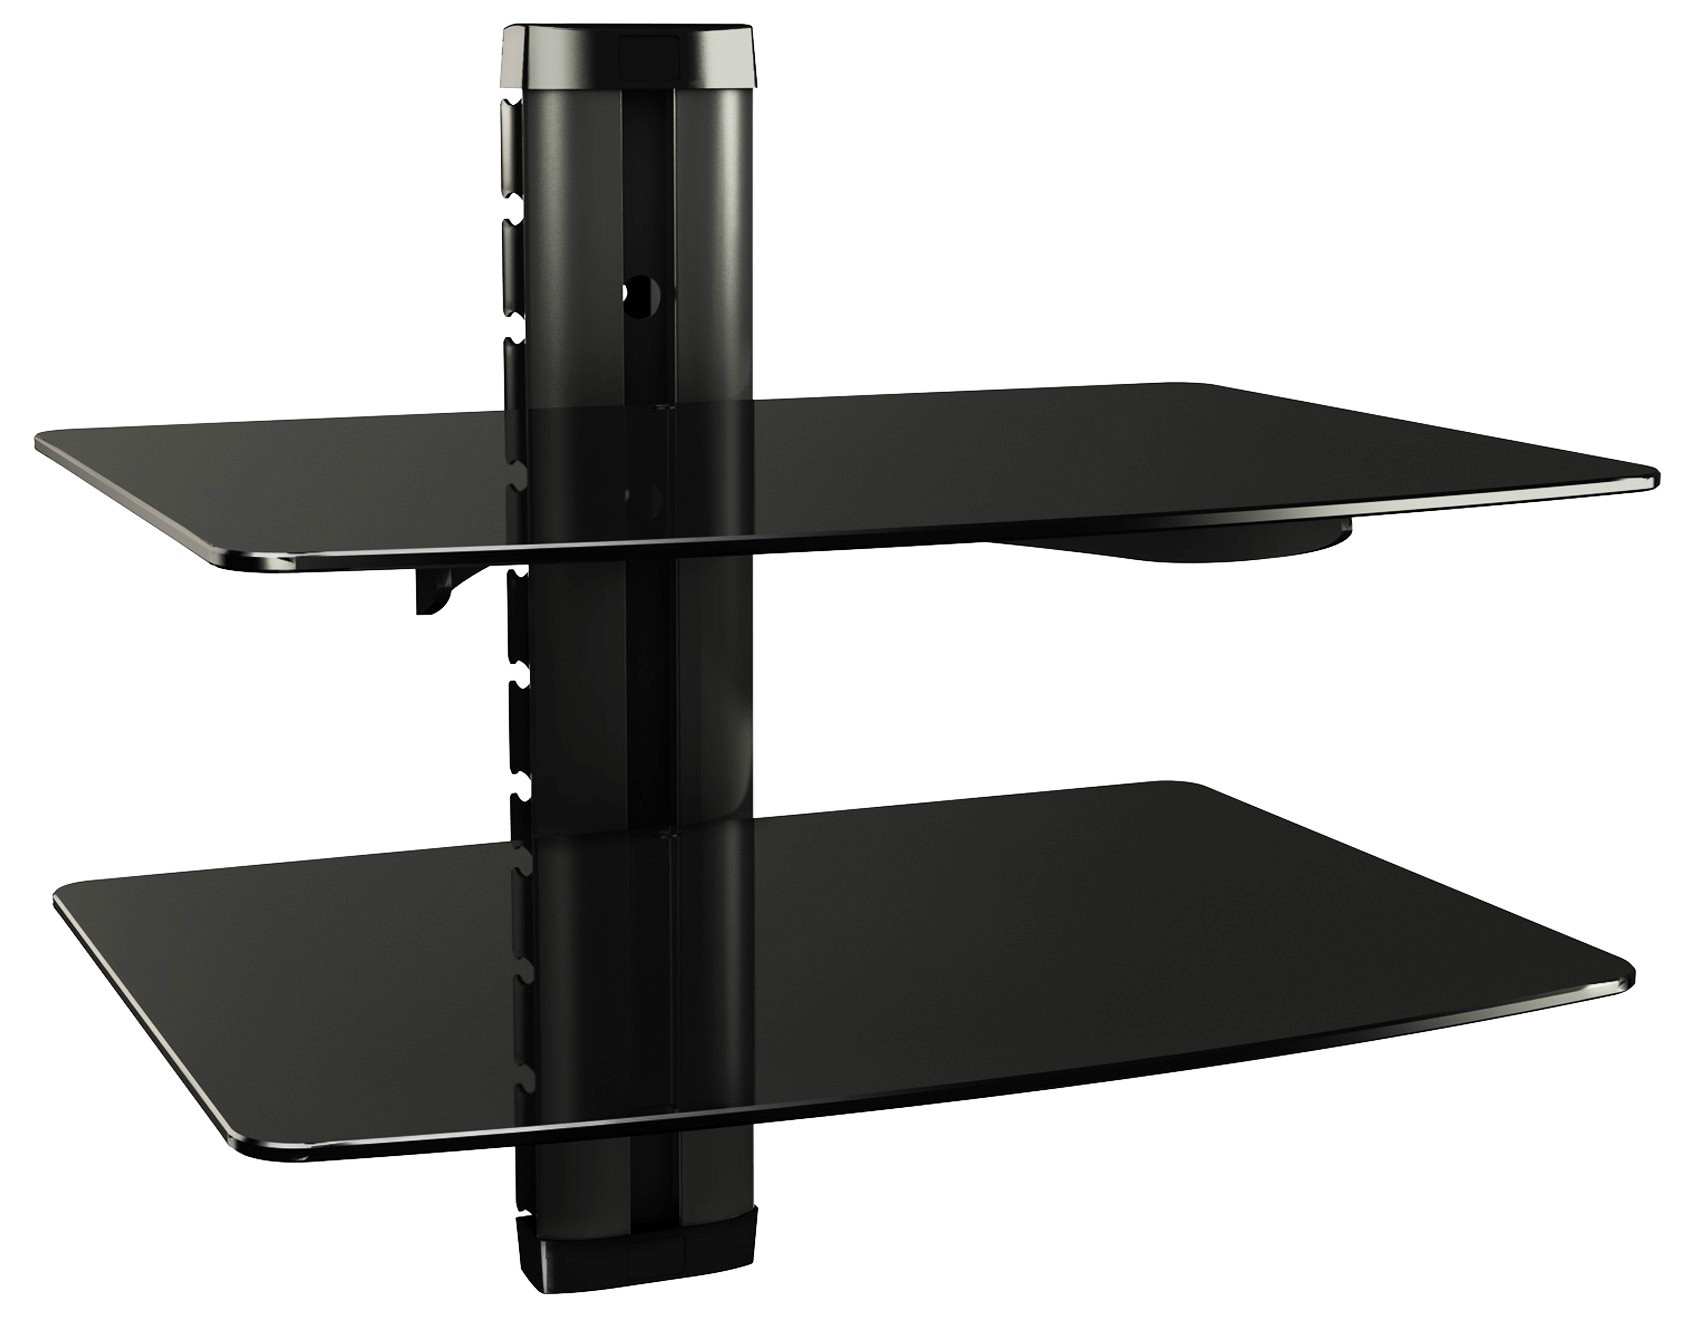 hifi regal dvd wandhalterung glas wandboard glasregal xl farbwahl. Black Bedroom Furniture Sets. Home Design Ideas